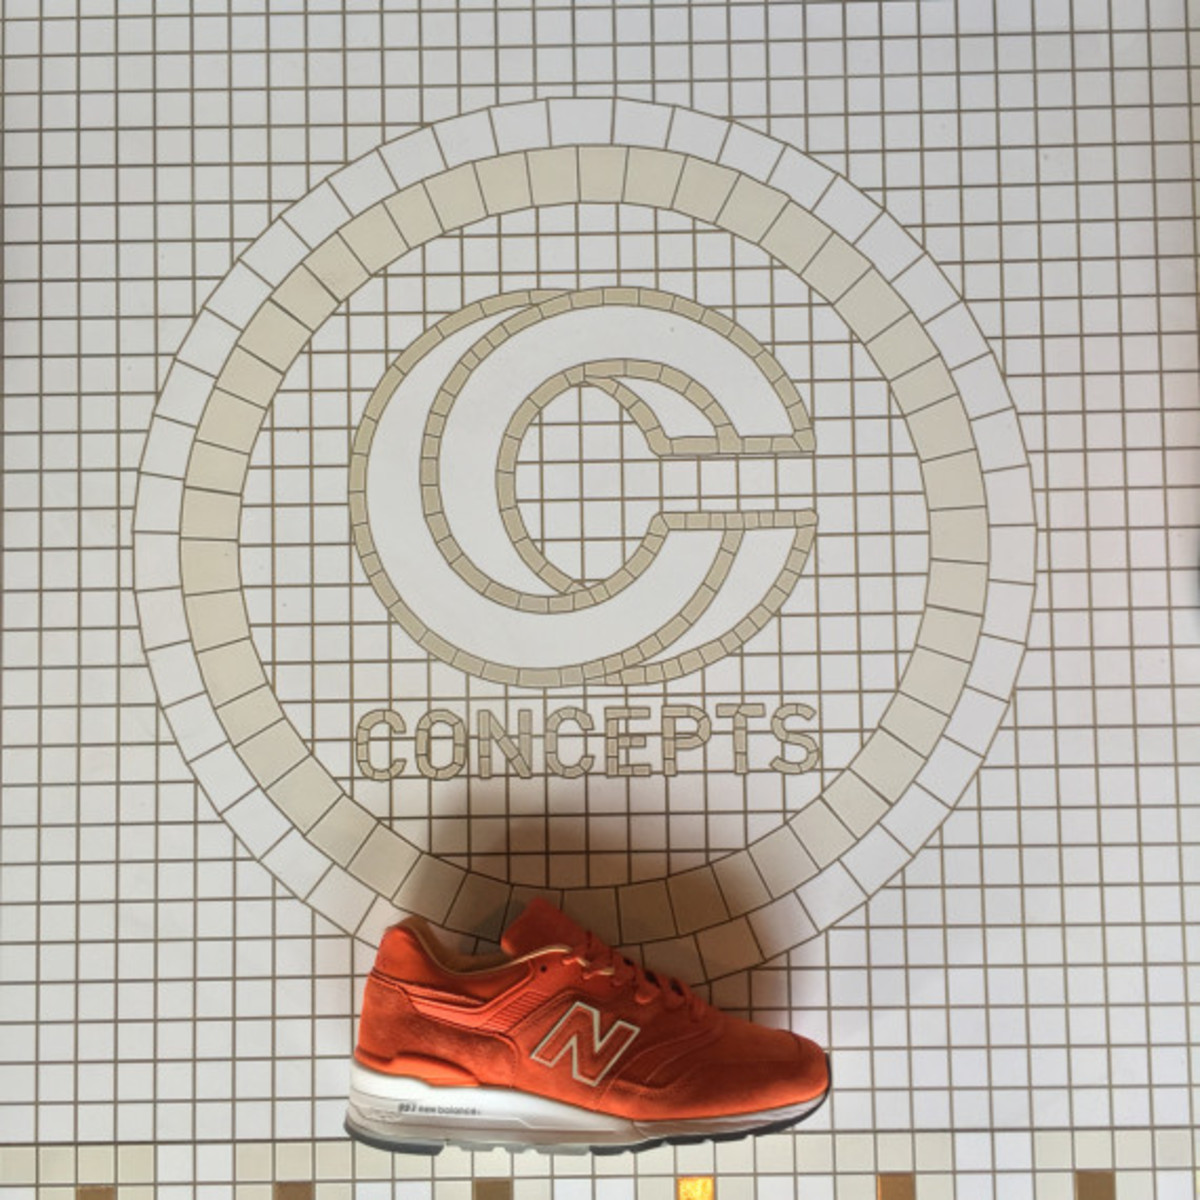 concepts-new-balance-997-luxury-goods-pop-up-store-14